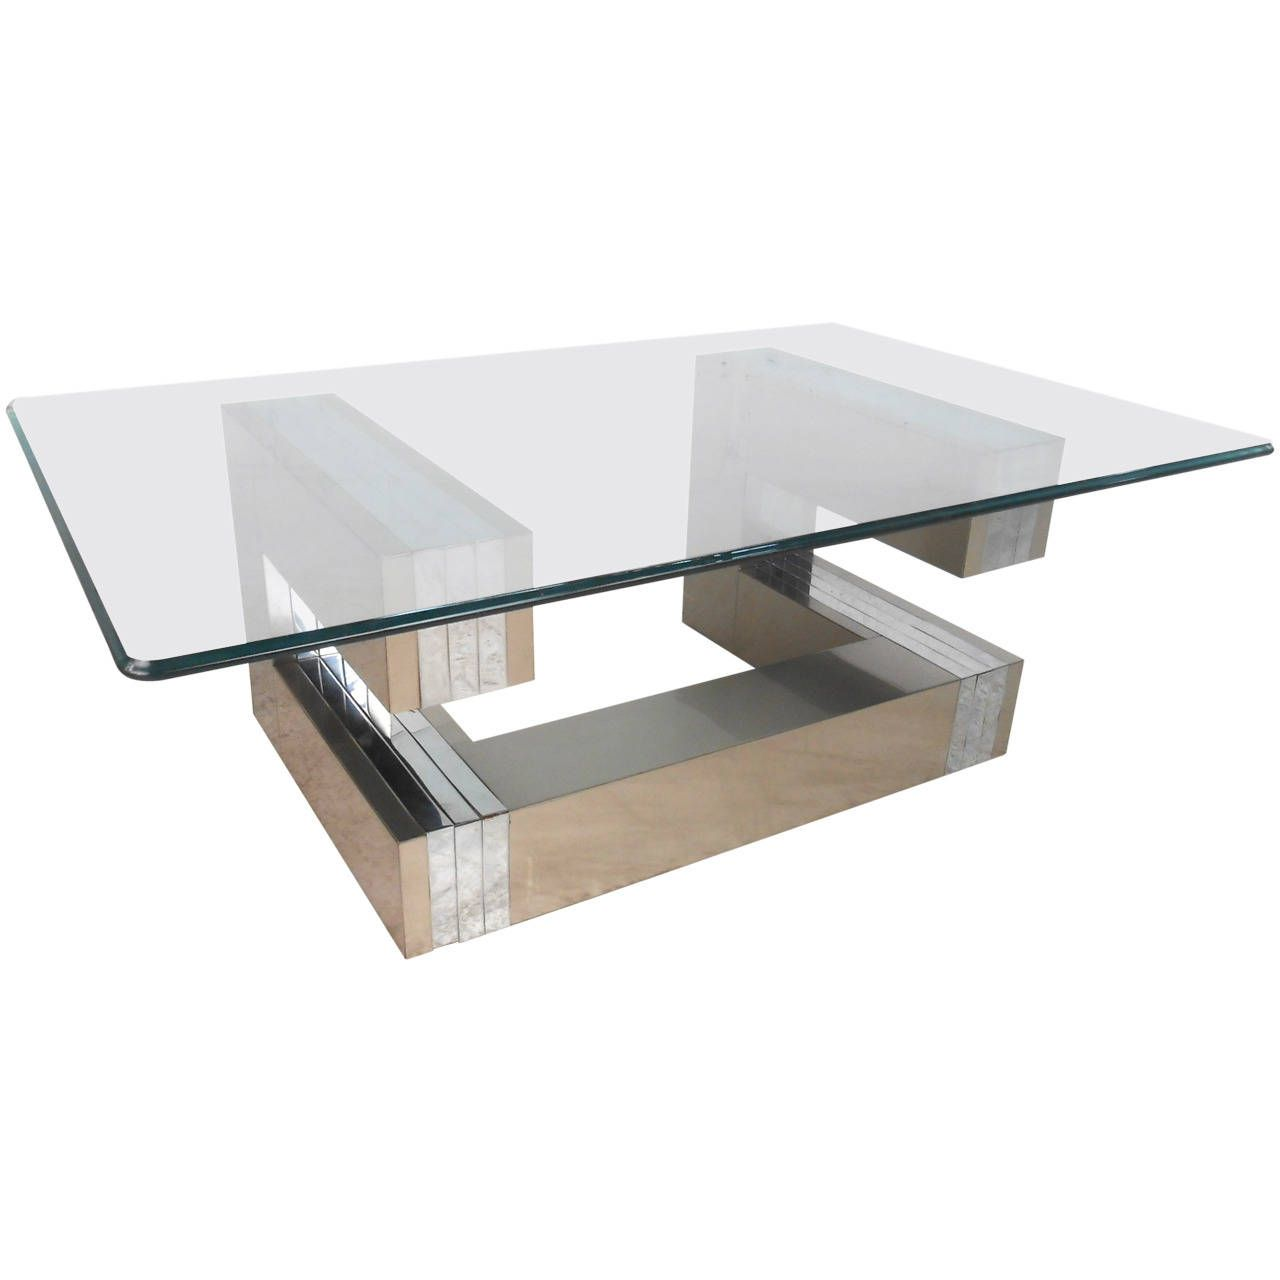 Mid-Century Modern Paul Evans Cityscape Cocktail Table   From a unique collection of antique and modern coffee and cocktail tables at https://www.1stdibs.com/furniture/tables/coffee-tables-cocktail-tables/